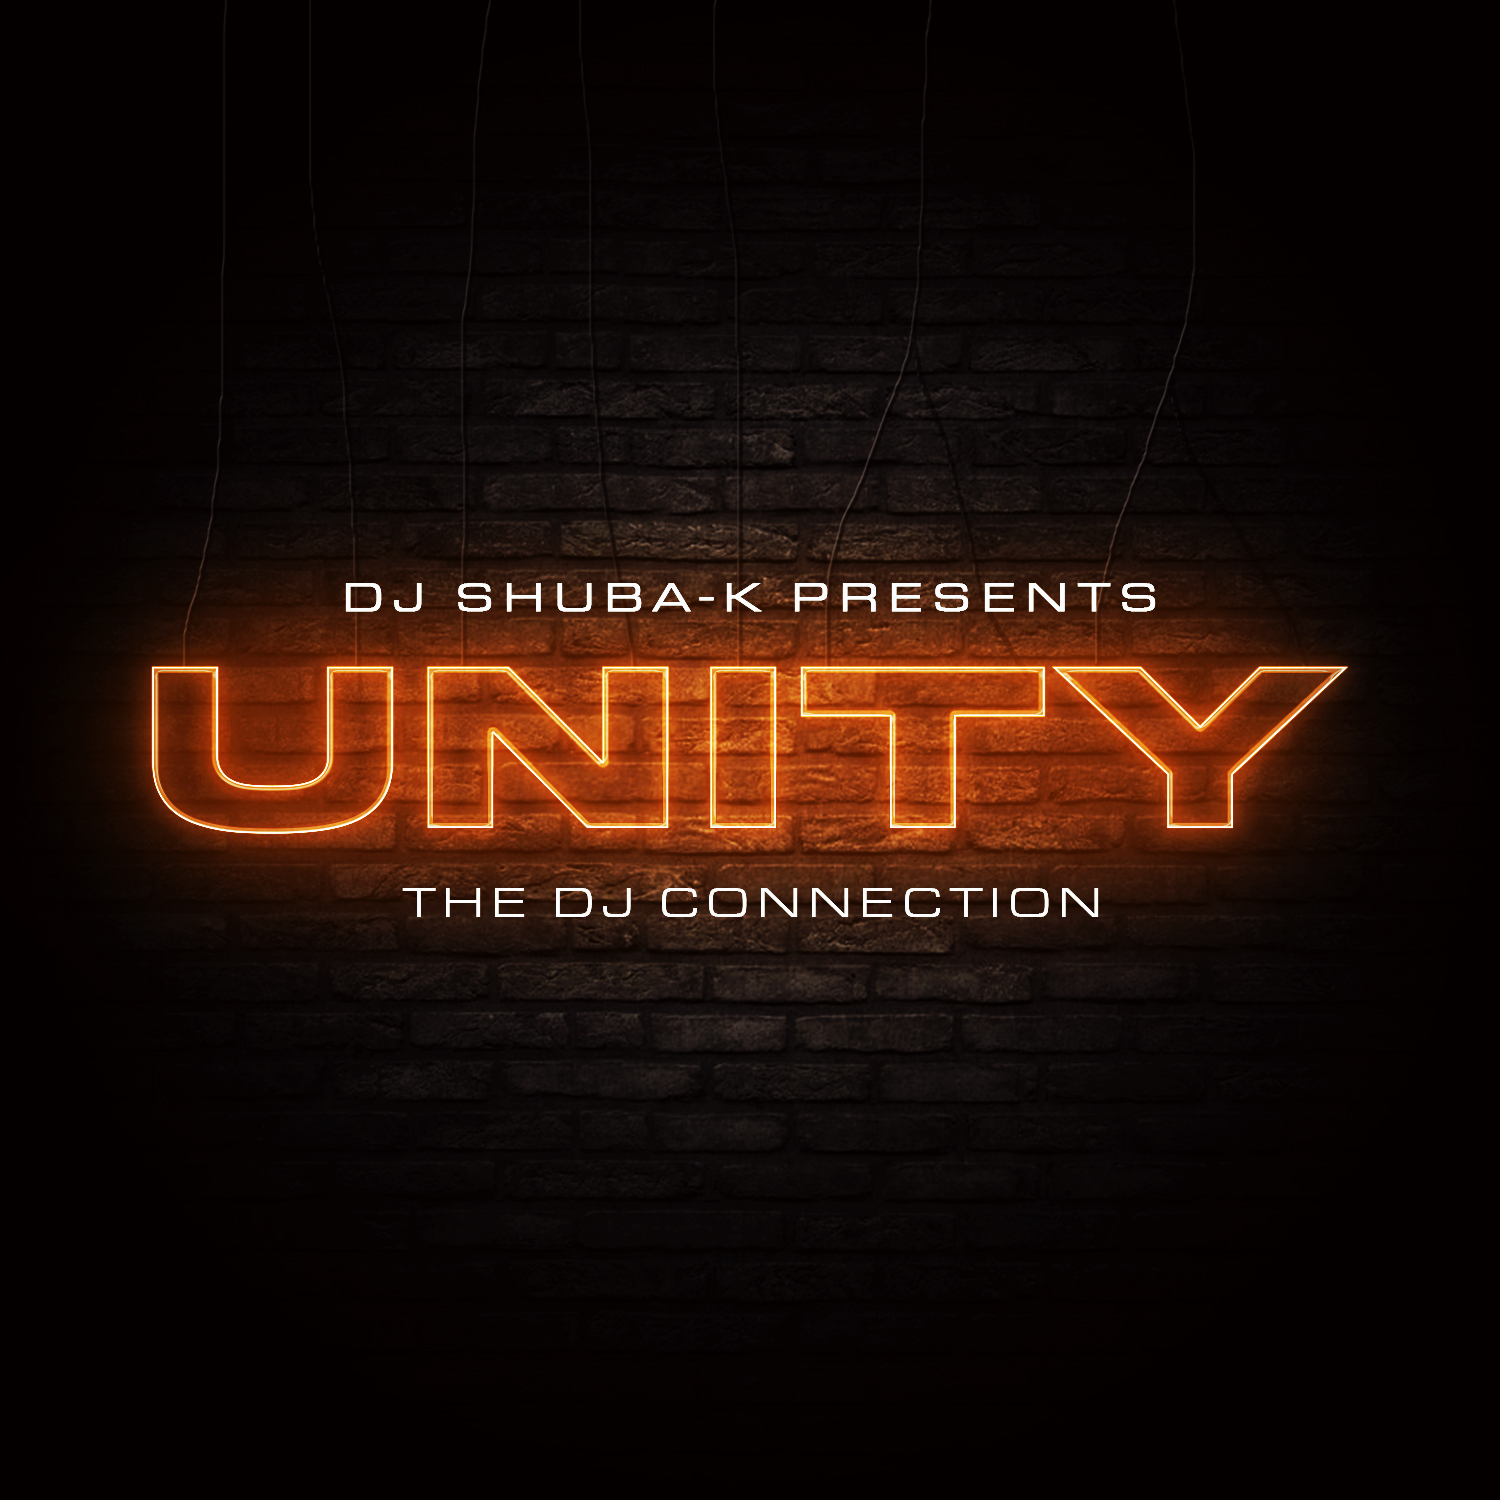 UNITY - The Dj Connection by Shuba-K Image